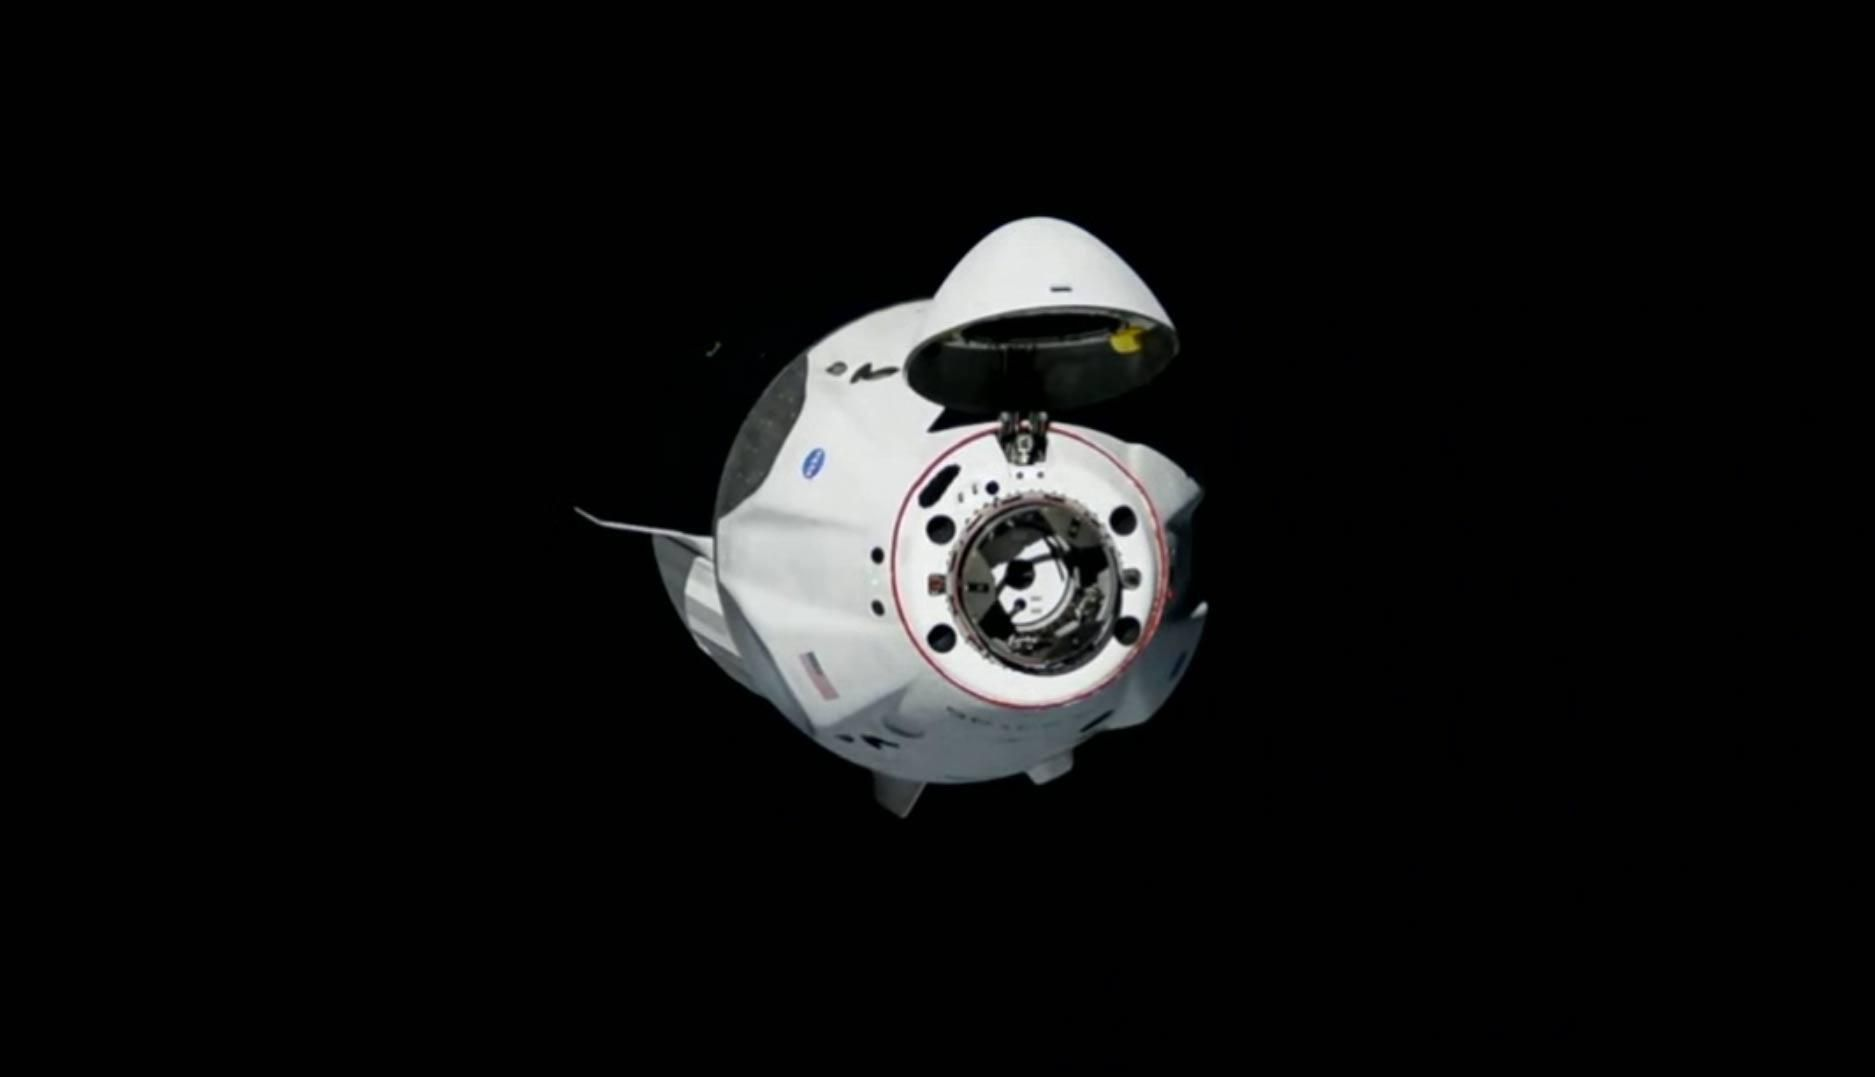 SpaceX's Crew Dragon is shown here minutes before docking with the International Space Station.